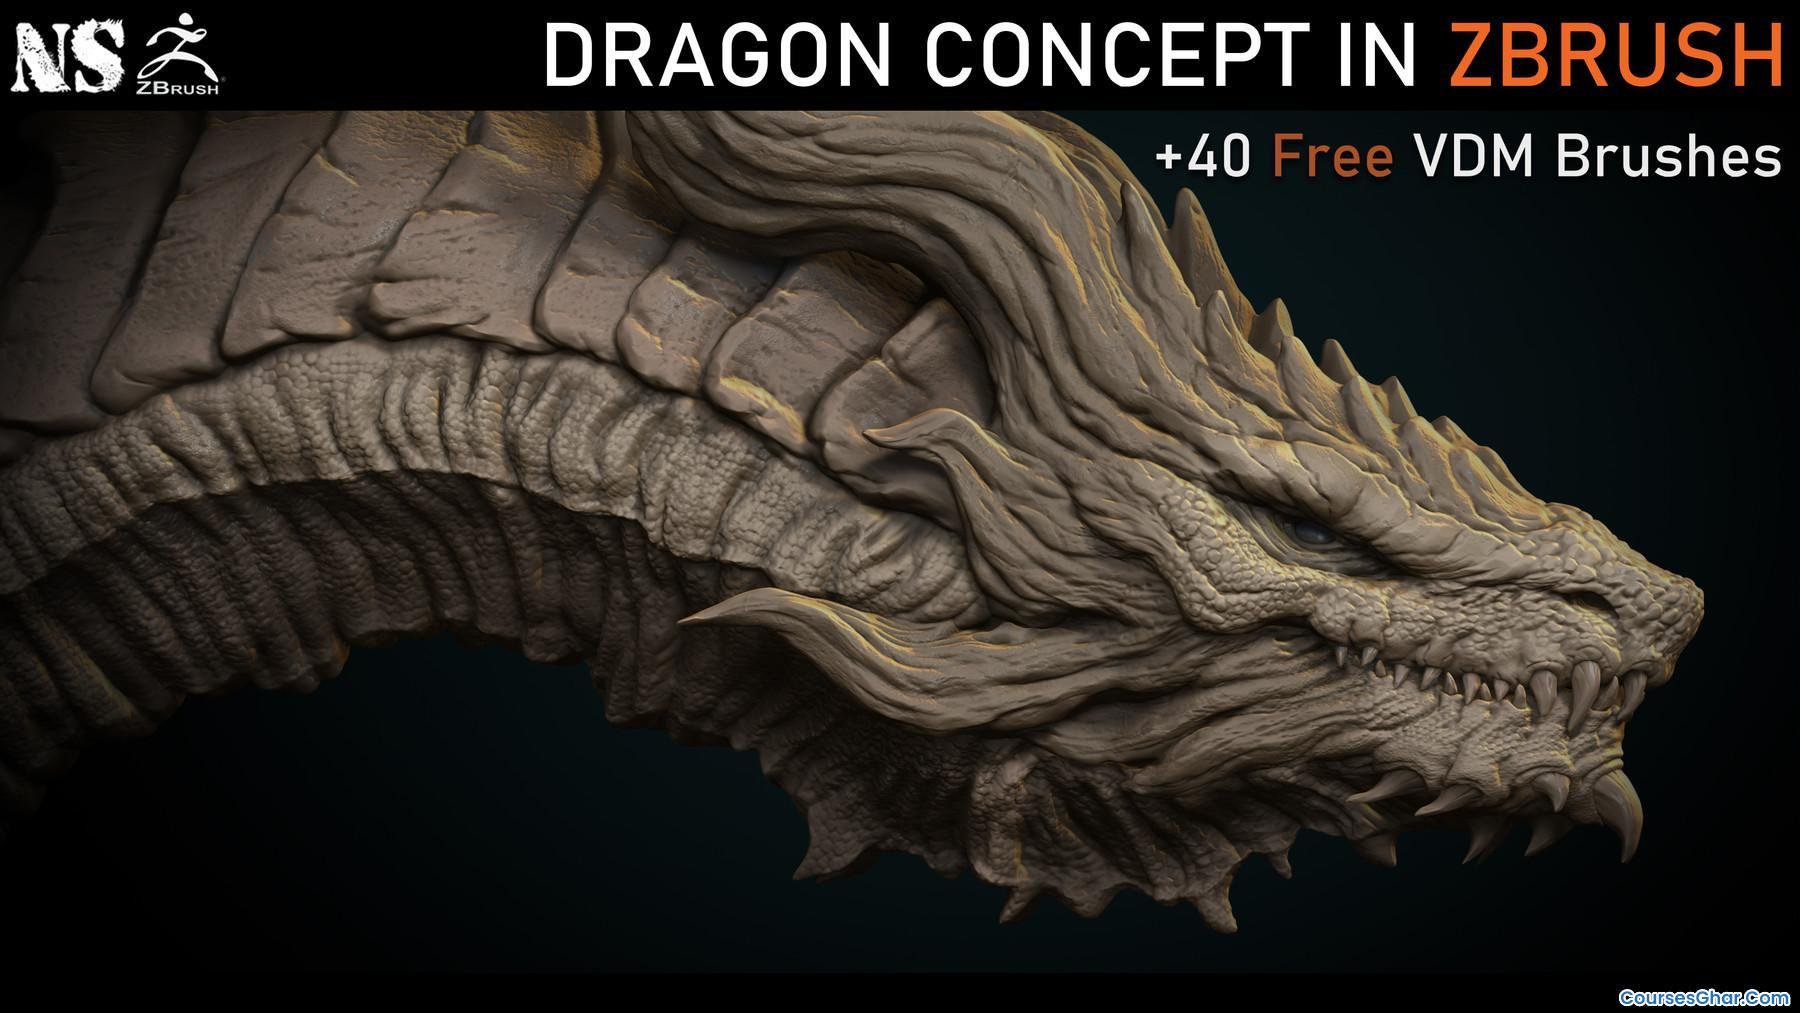 Artstation – Dragon Concept in Zbrush